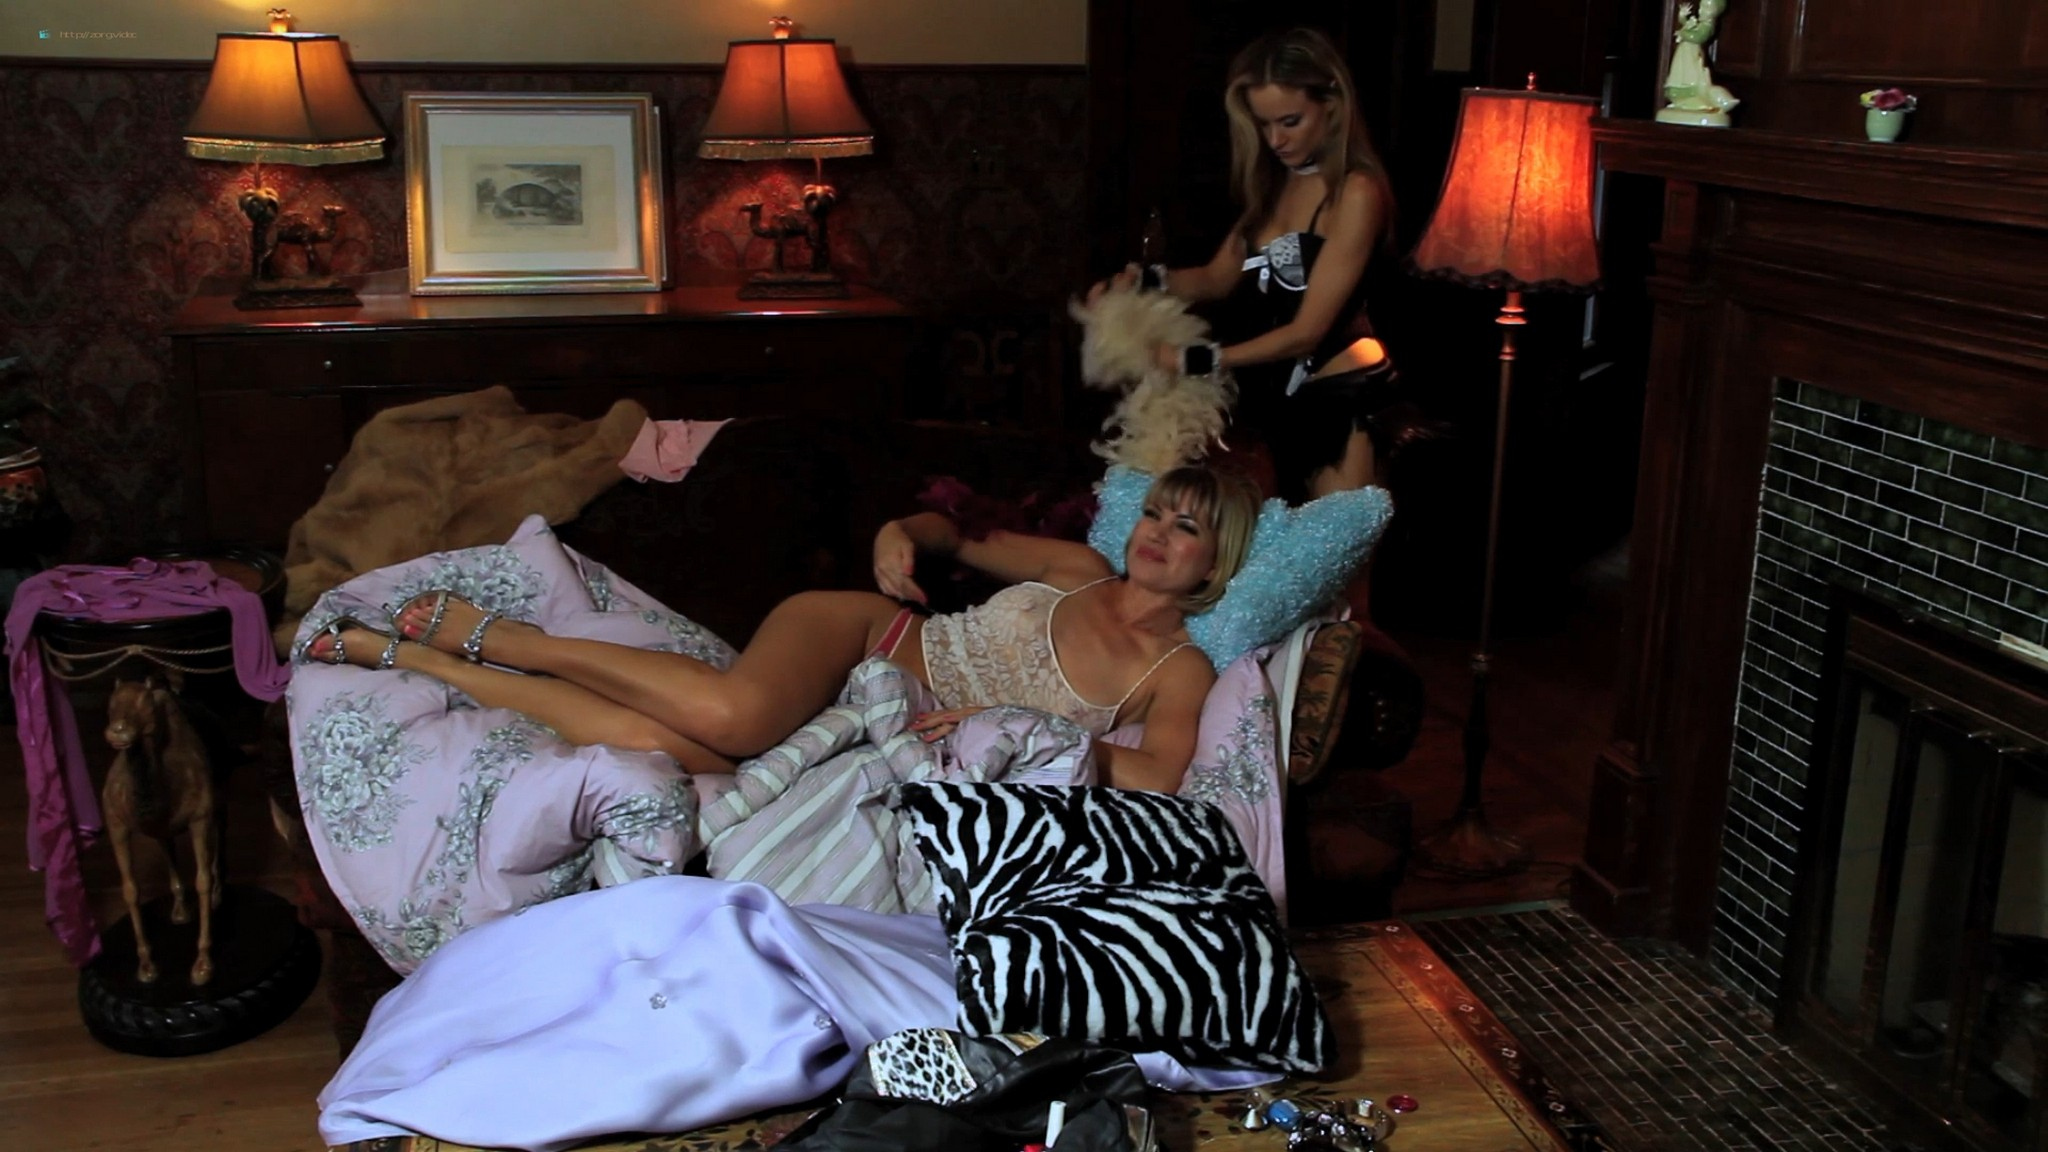 Rena Riffel nude topless - Showgirls 2: Penny's from Heaven (2011) HD 1080p Web (13)